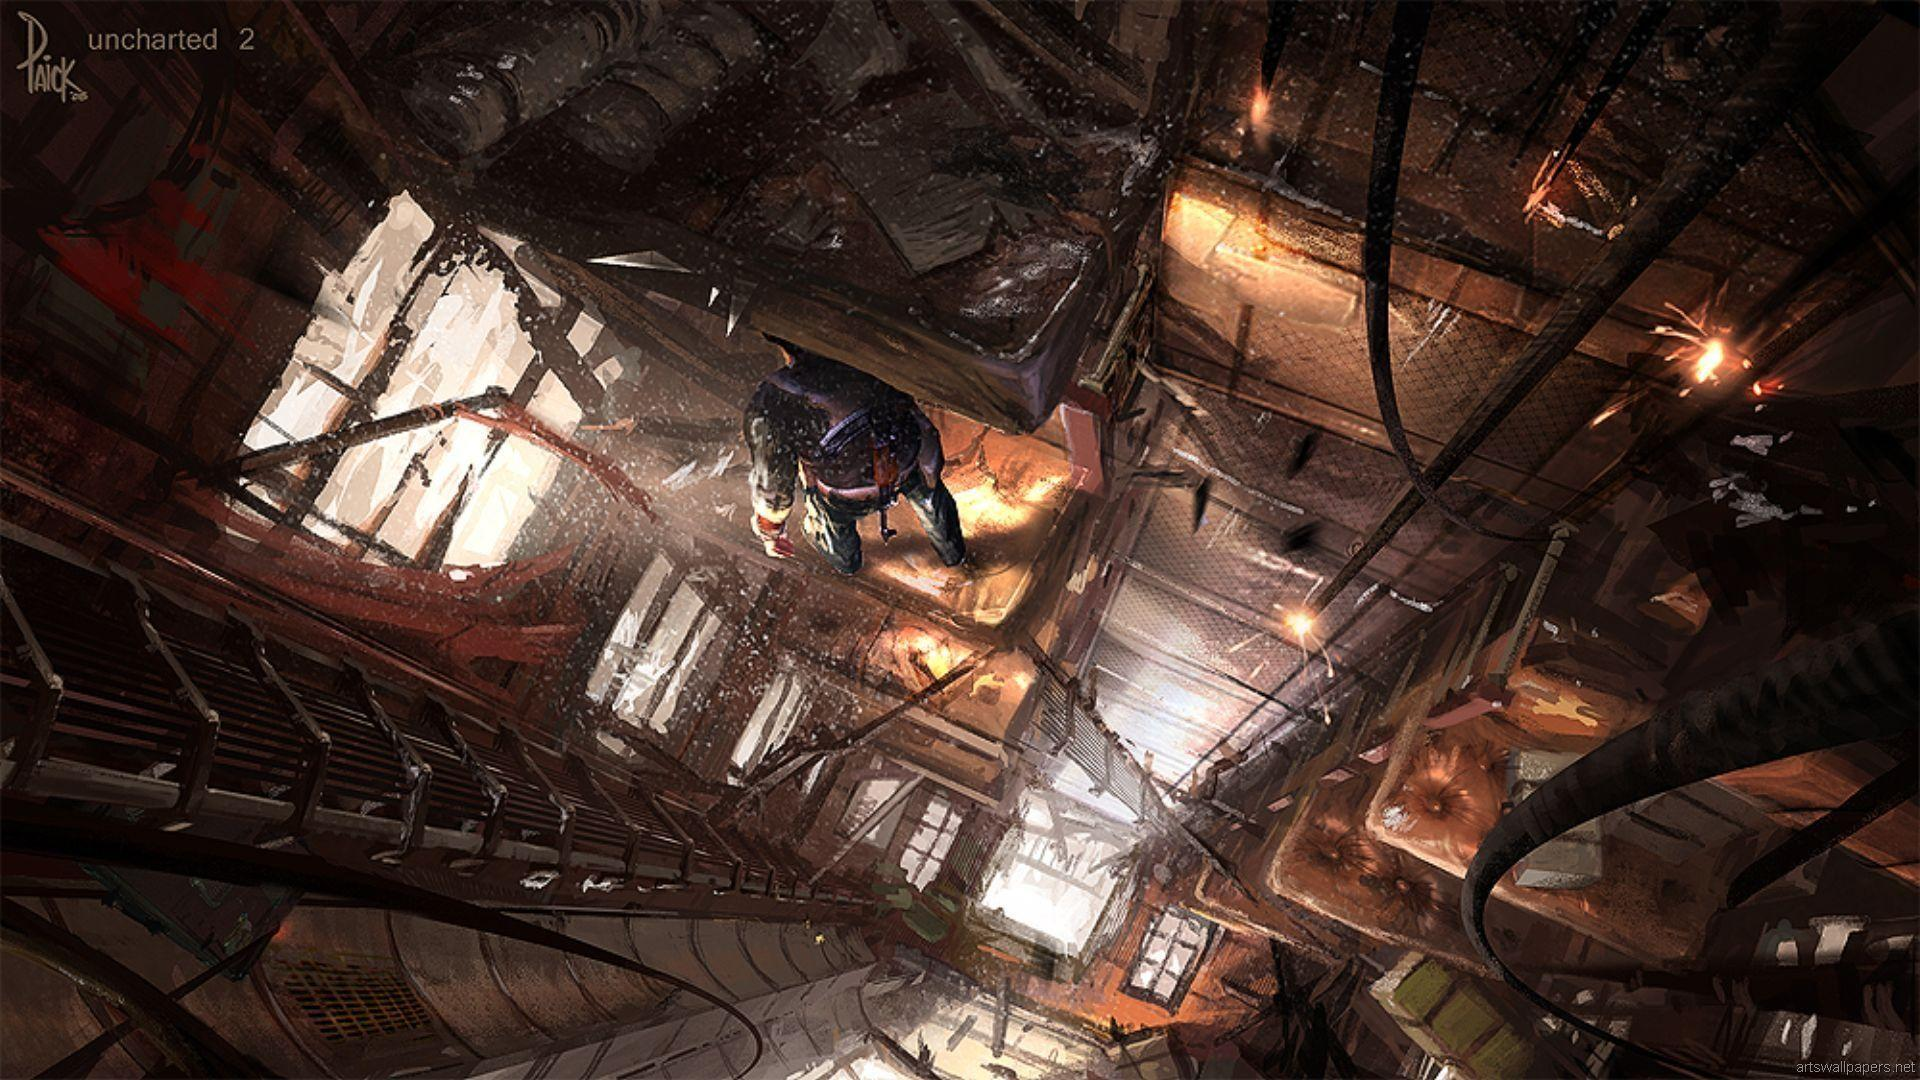 12 Uncharted: Drake's Fortune Wallpapers | Uncharted: Drake's ...